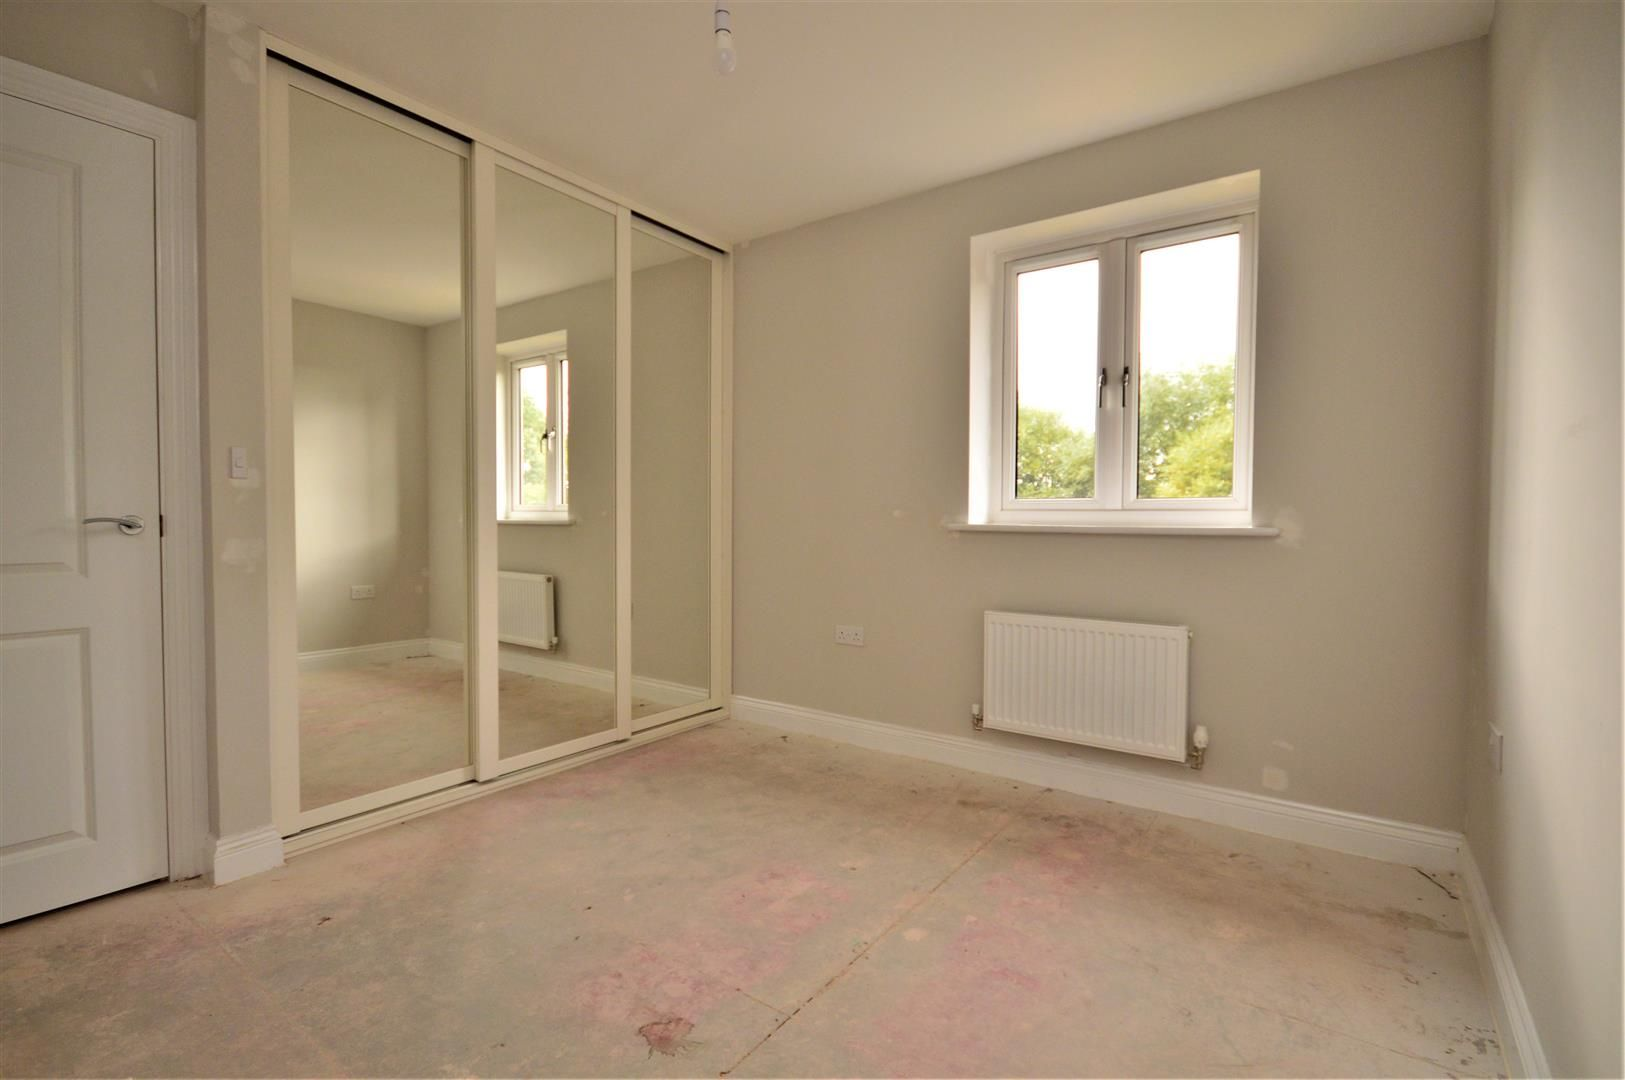 4 bed detached for sale in Kingstone  - Property Image 11